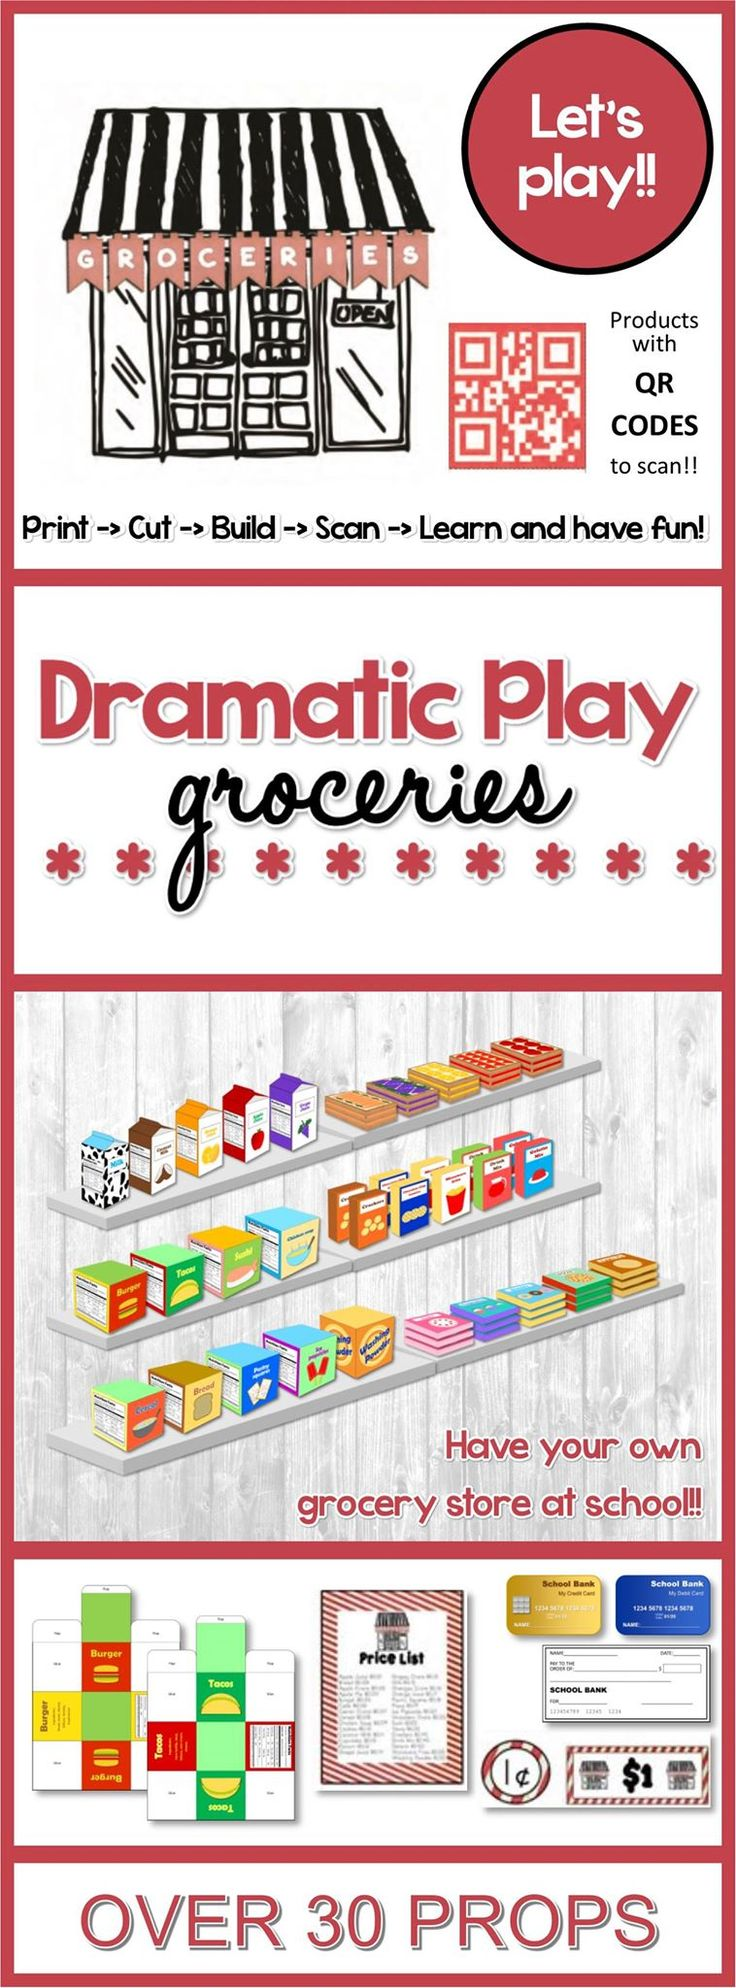 Open your own groceries store in your classroom with this dramatic play set, equipped with everything you'll need - unlike other dramatic play sets, these set not only comes with all the necessary matching store signs, bunting, money, coupons, credit and debit cards, checks, labels, name tags, and price tags, but you'll also receive 29 product templates for you to print, cut, glue and stock in your own groceries store.